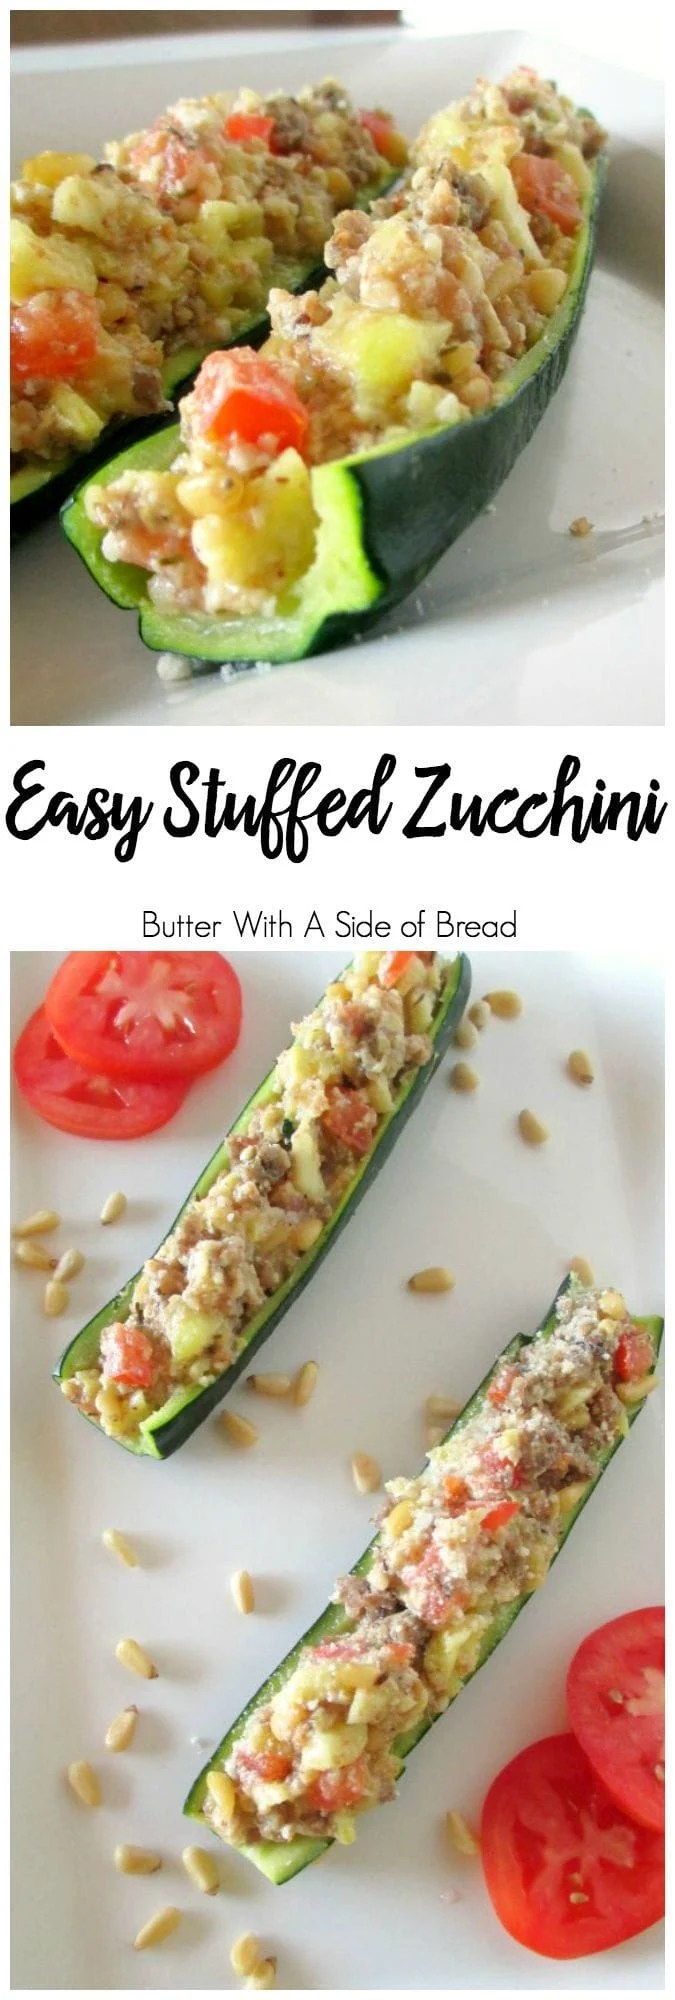 Our Easy Stuffed Zucchini is a simple, flavorful recipe that everyone enjoys. You can make the entire dish in the microwave- or put it on the grill!